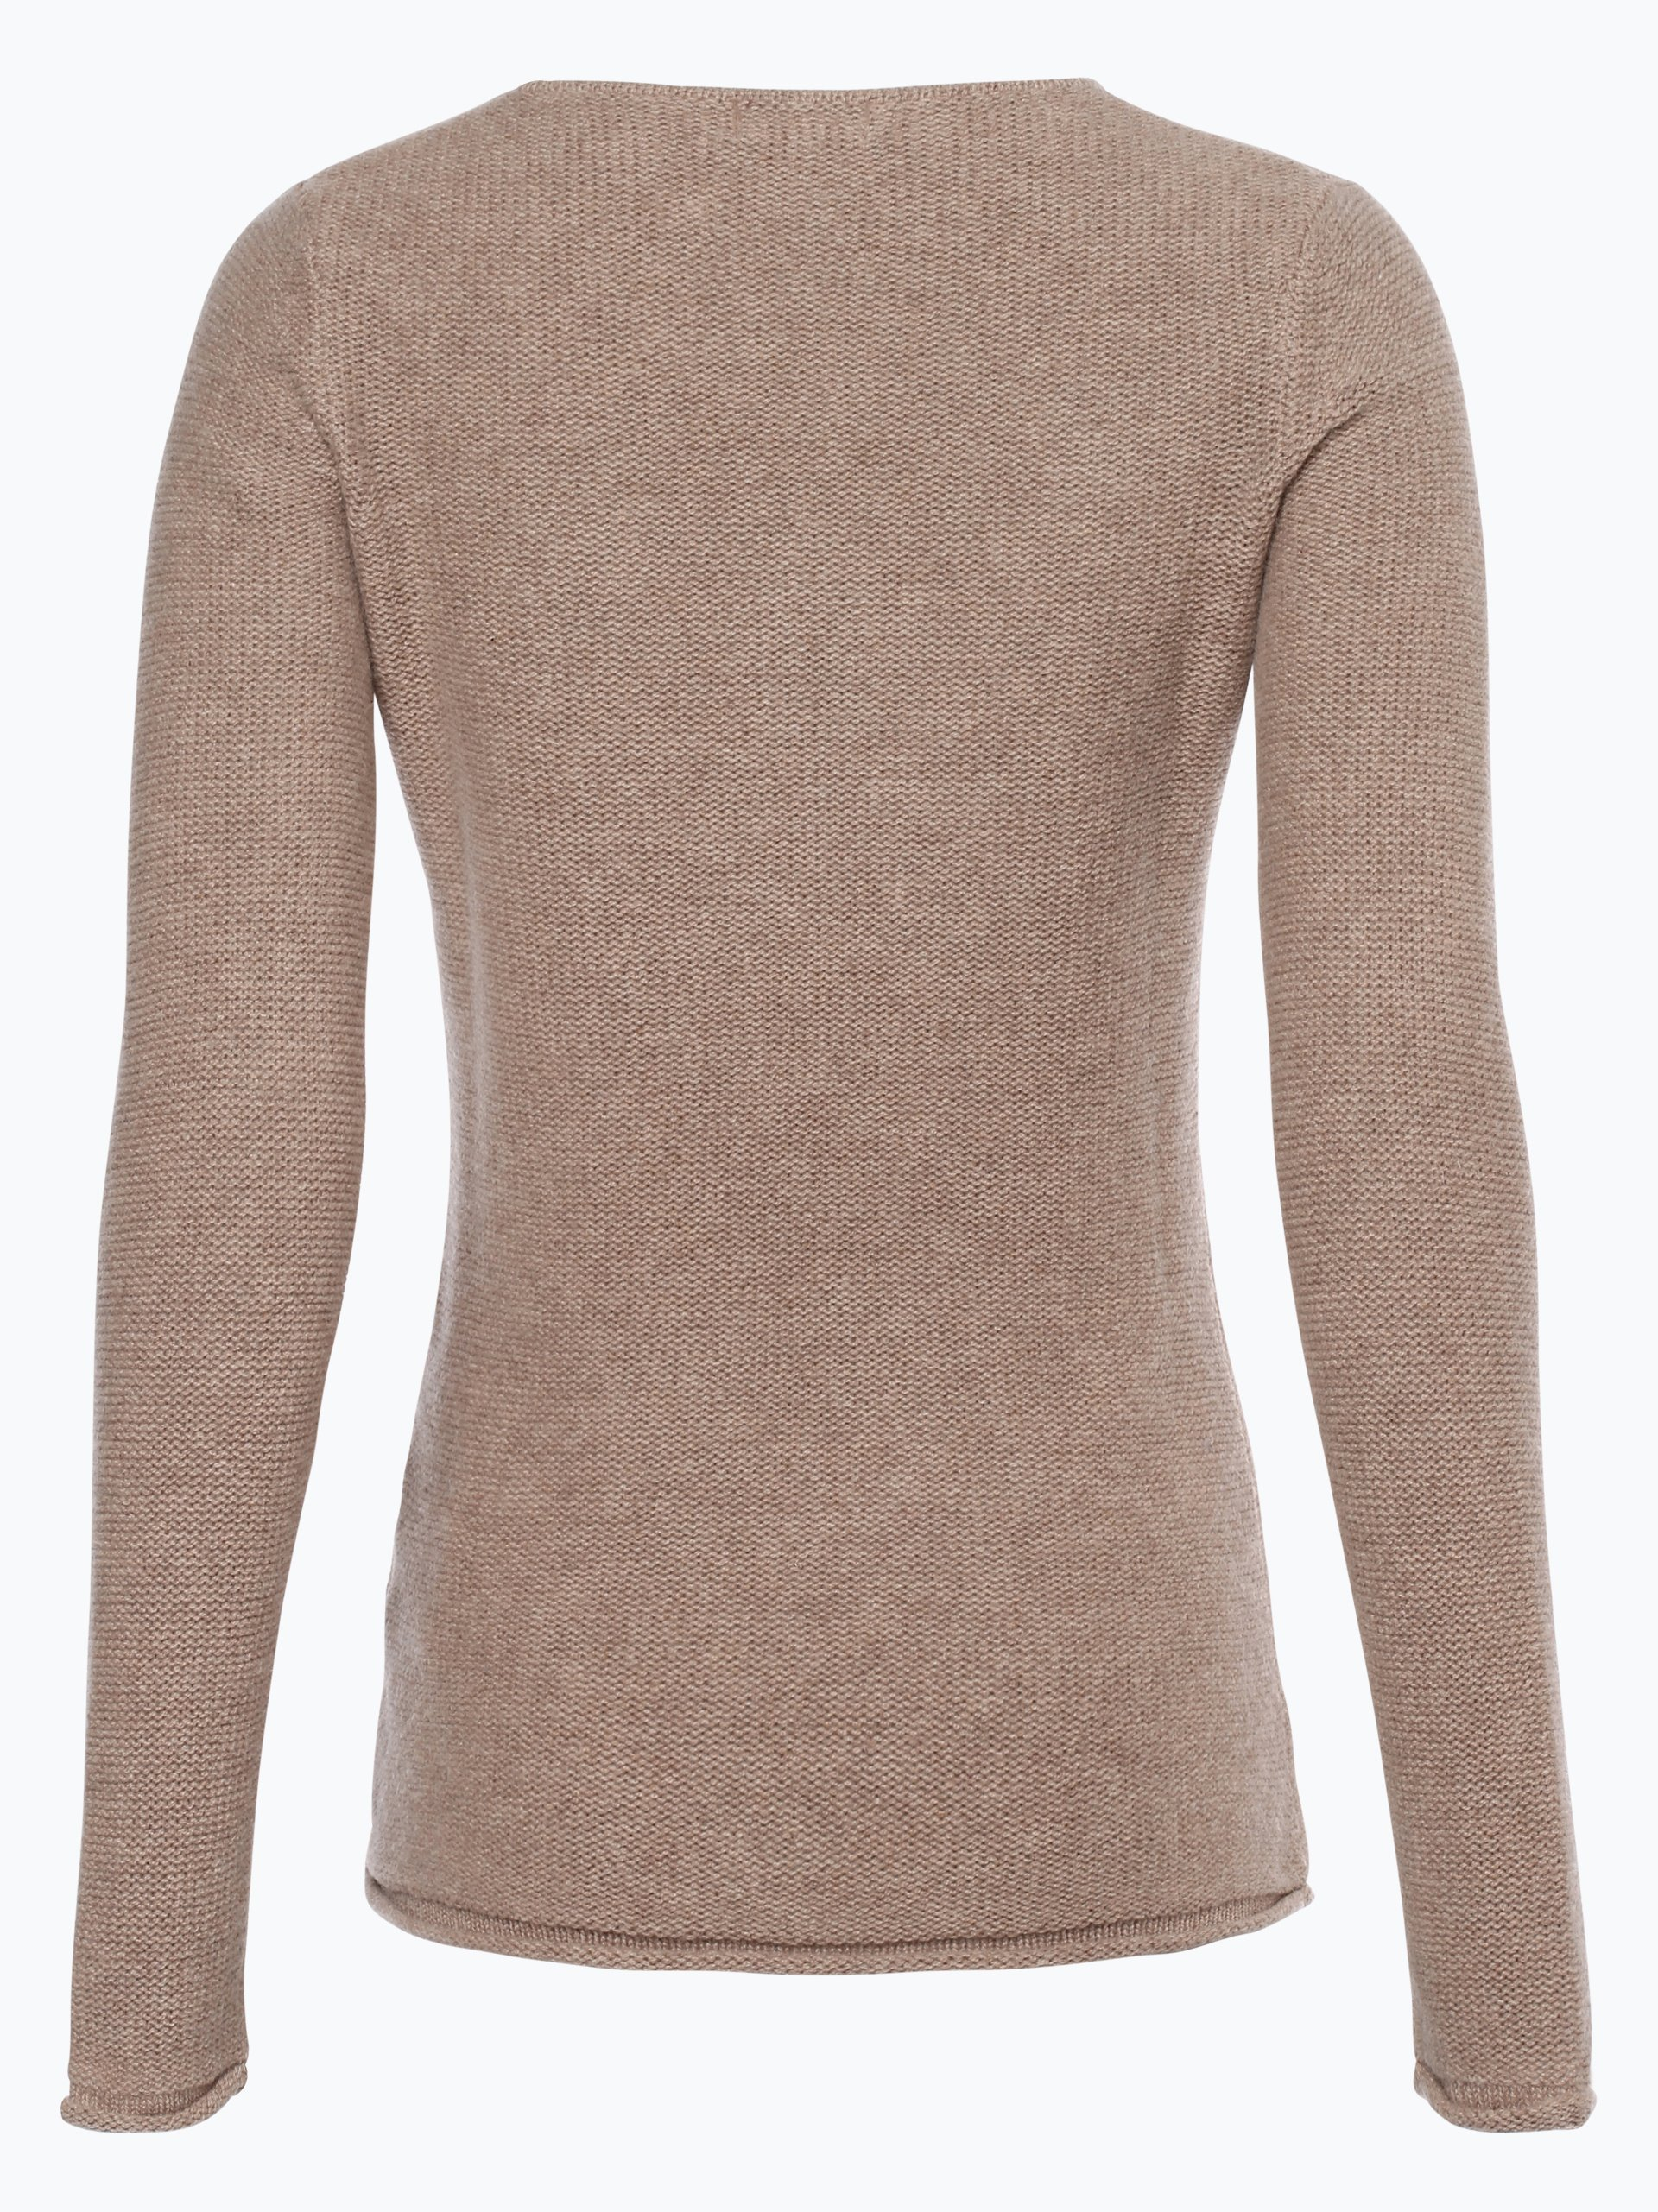 marie lund damen pure cashmere pullover taupe uni online. Black Bedroom Furniture Sets. Home Design Ideas